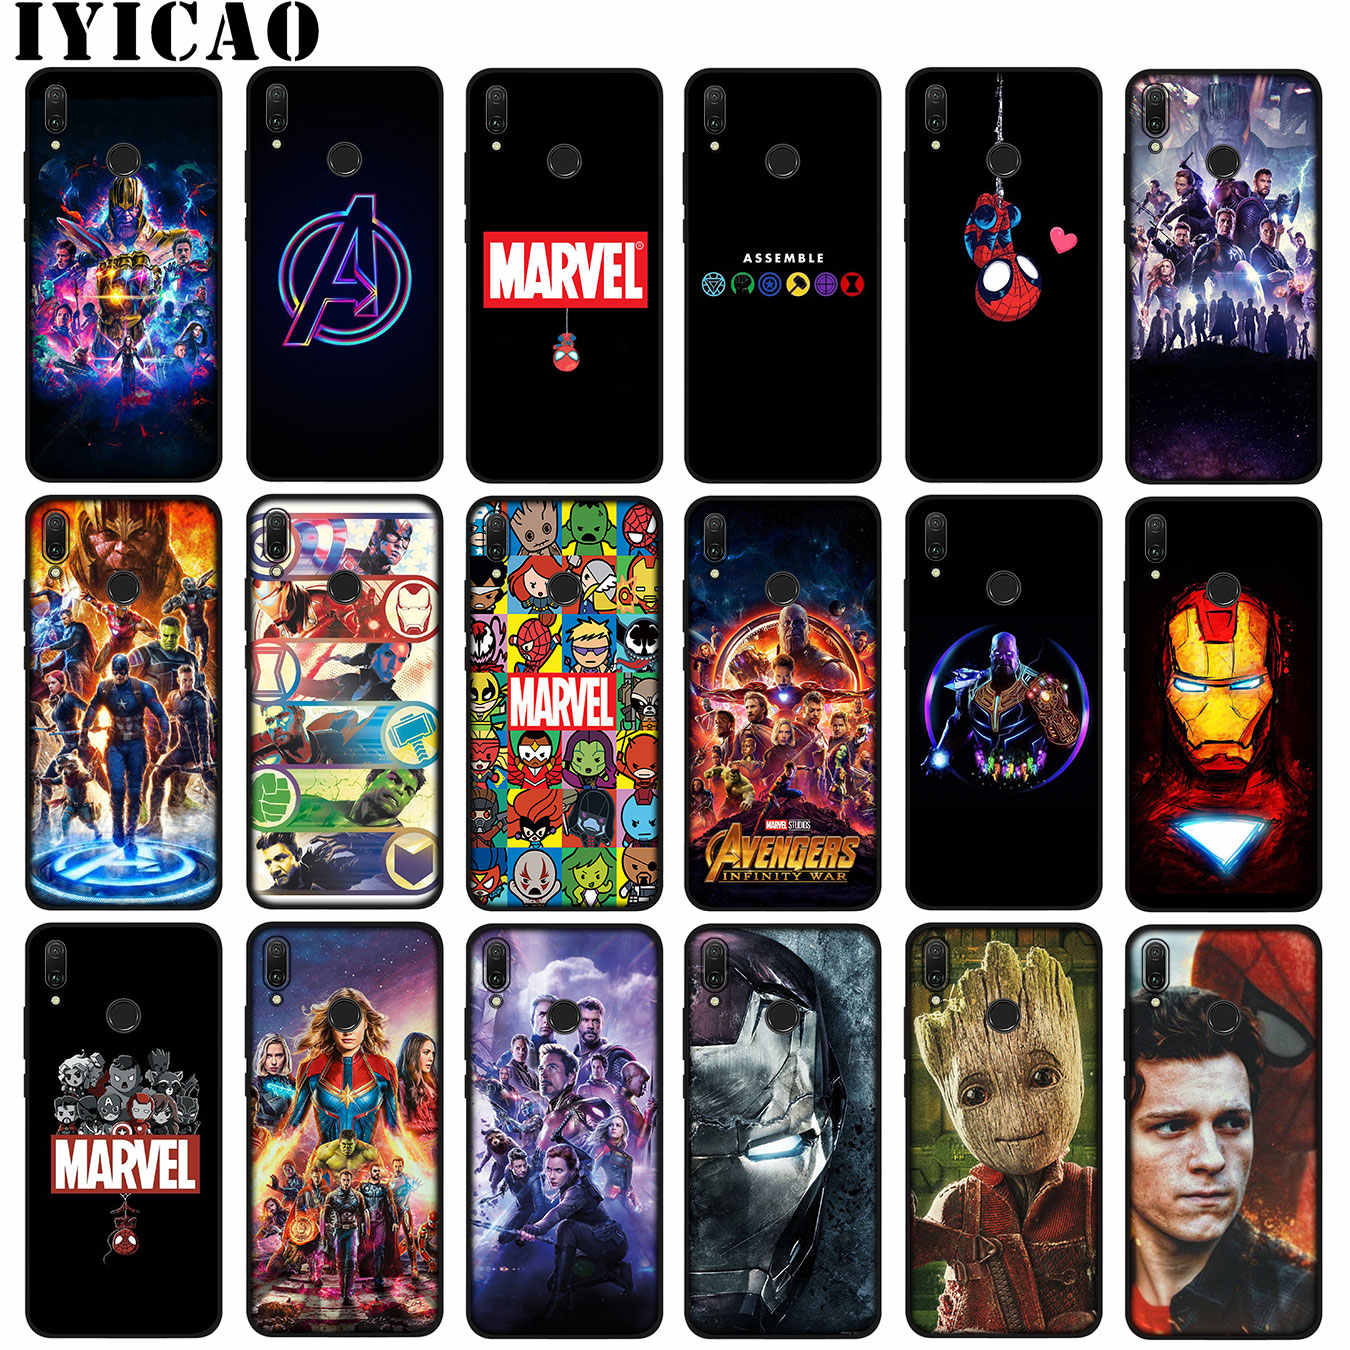 Avengers Endgame Marvel Avengers Iron Man Thanos Soft Case untuk Huawei P30 P20 Pro P10 P9 Lite Mini P Smart Z 2019 Tom Holland